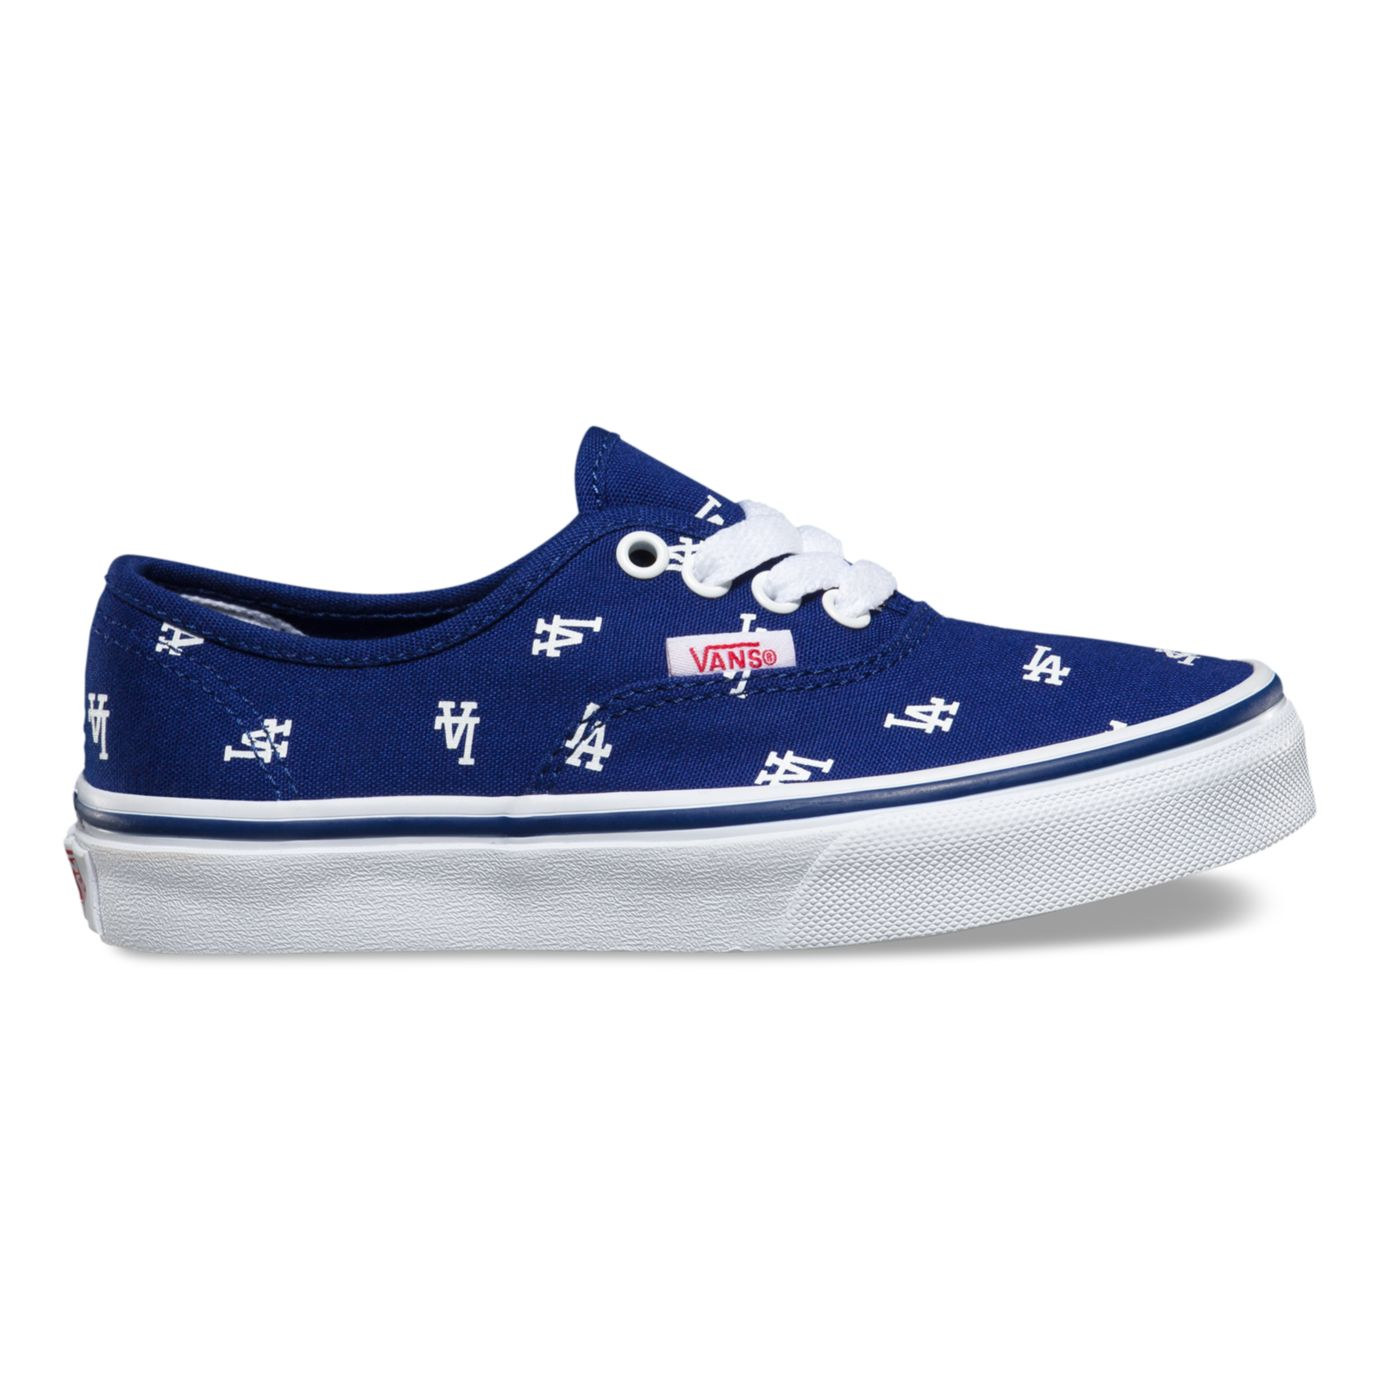 439ce2f32501 Vans x Major League Baseball